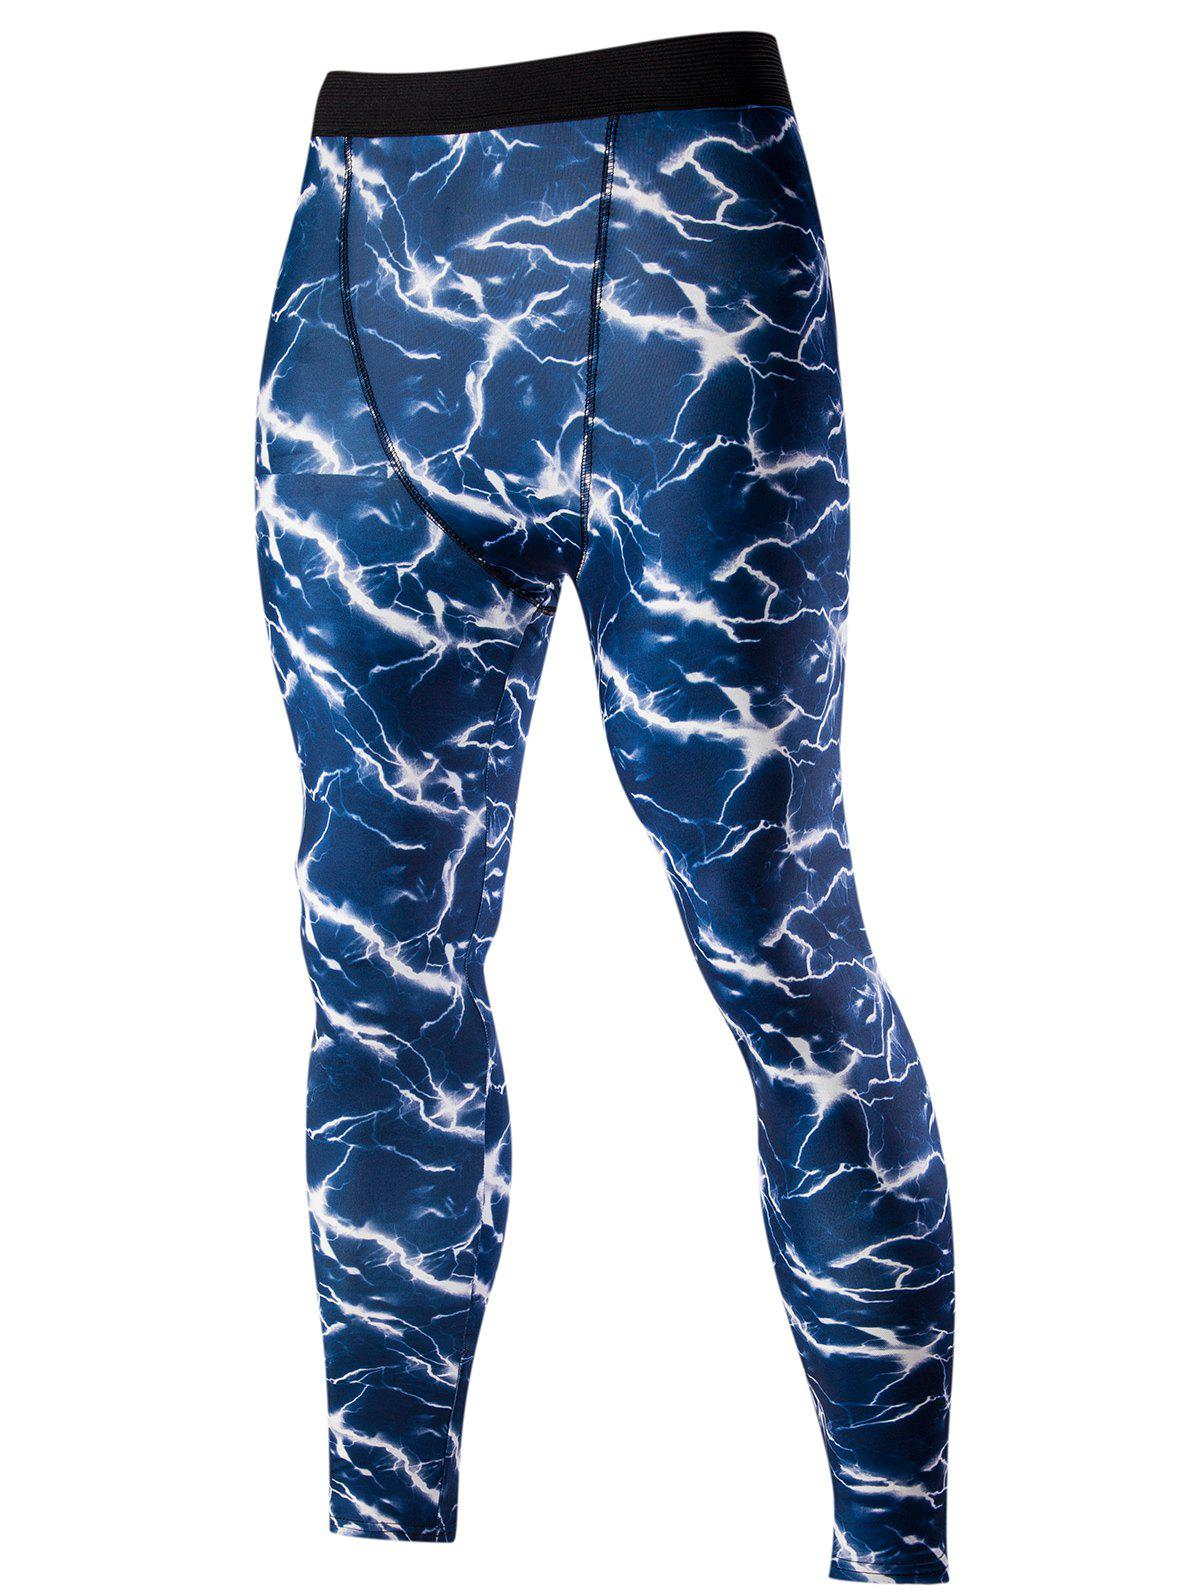 Men\s Stylish Elastic Waist Abstract Print Training PantsMen<br><br><br>Size: 2XL<br>Color: BLUE